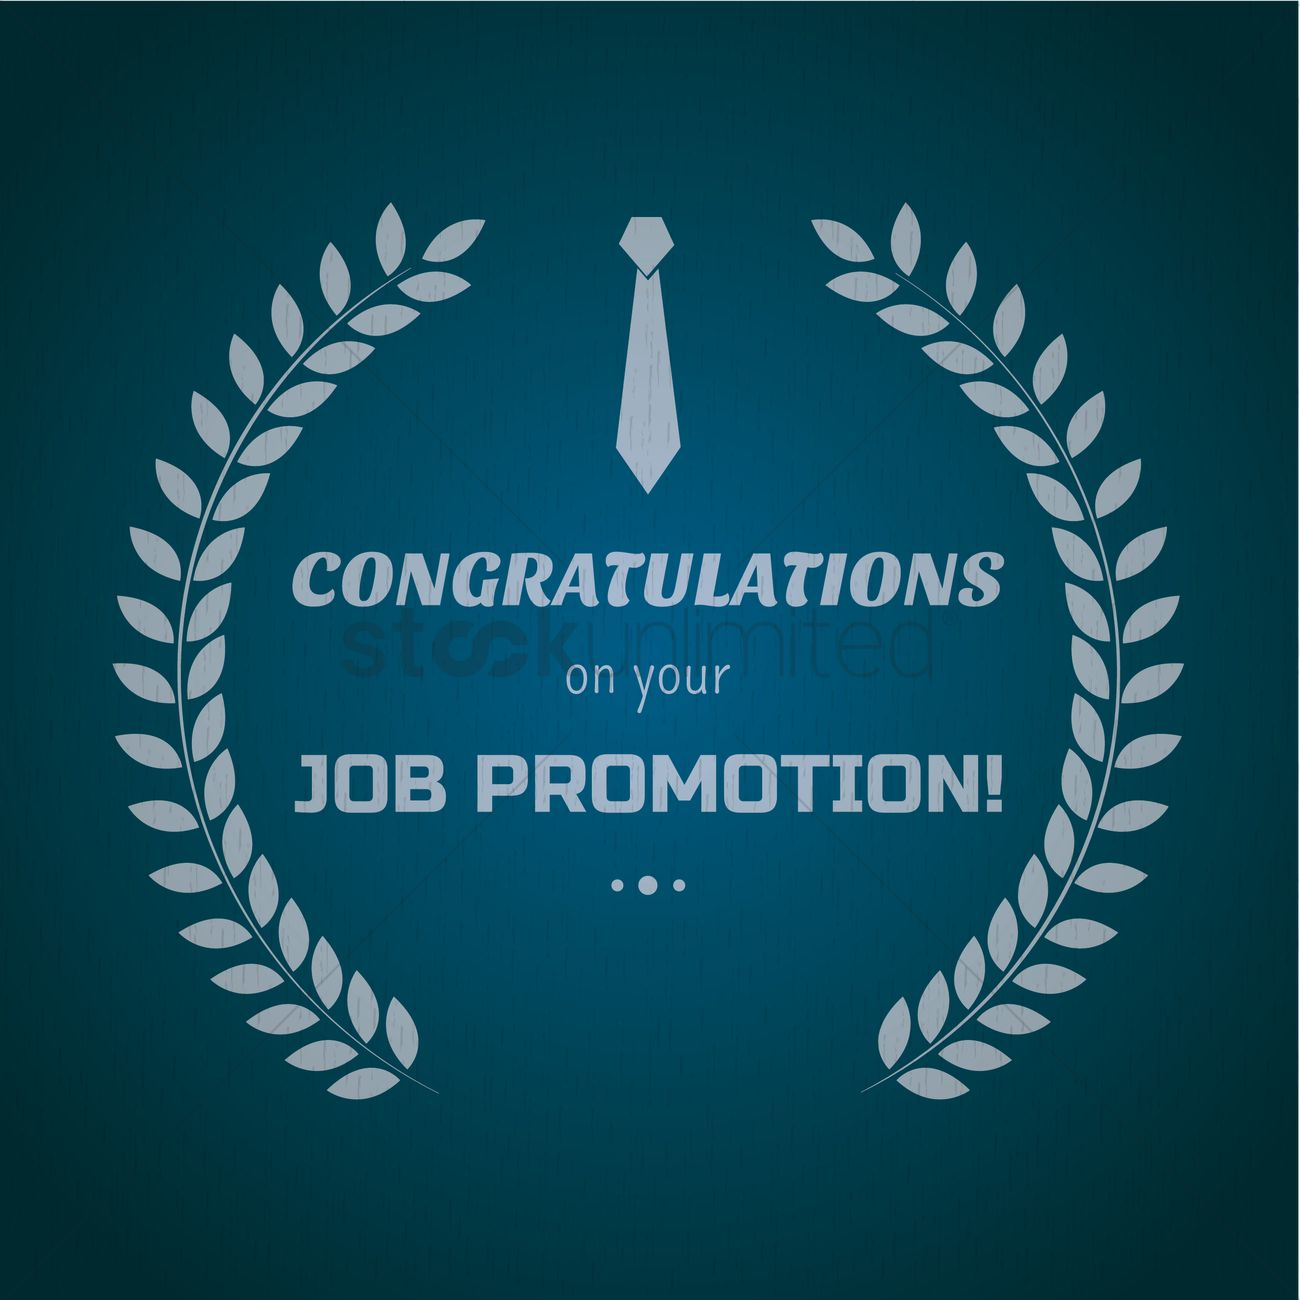 Congratulations on your job promotion vector image 1615709 congratulations on your job promotion vector graphic m4hsunfo